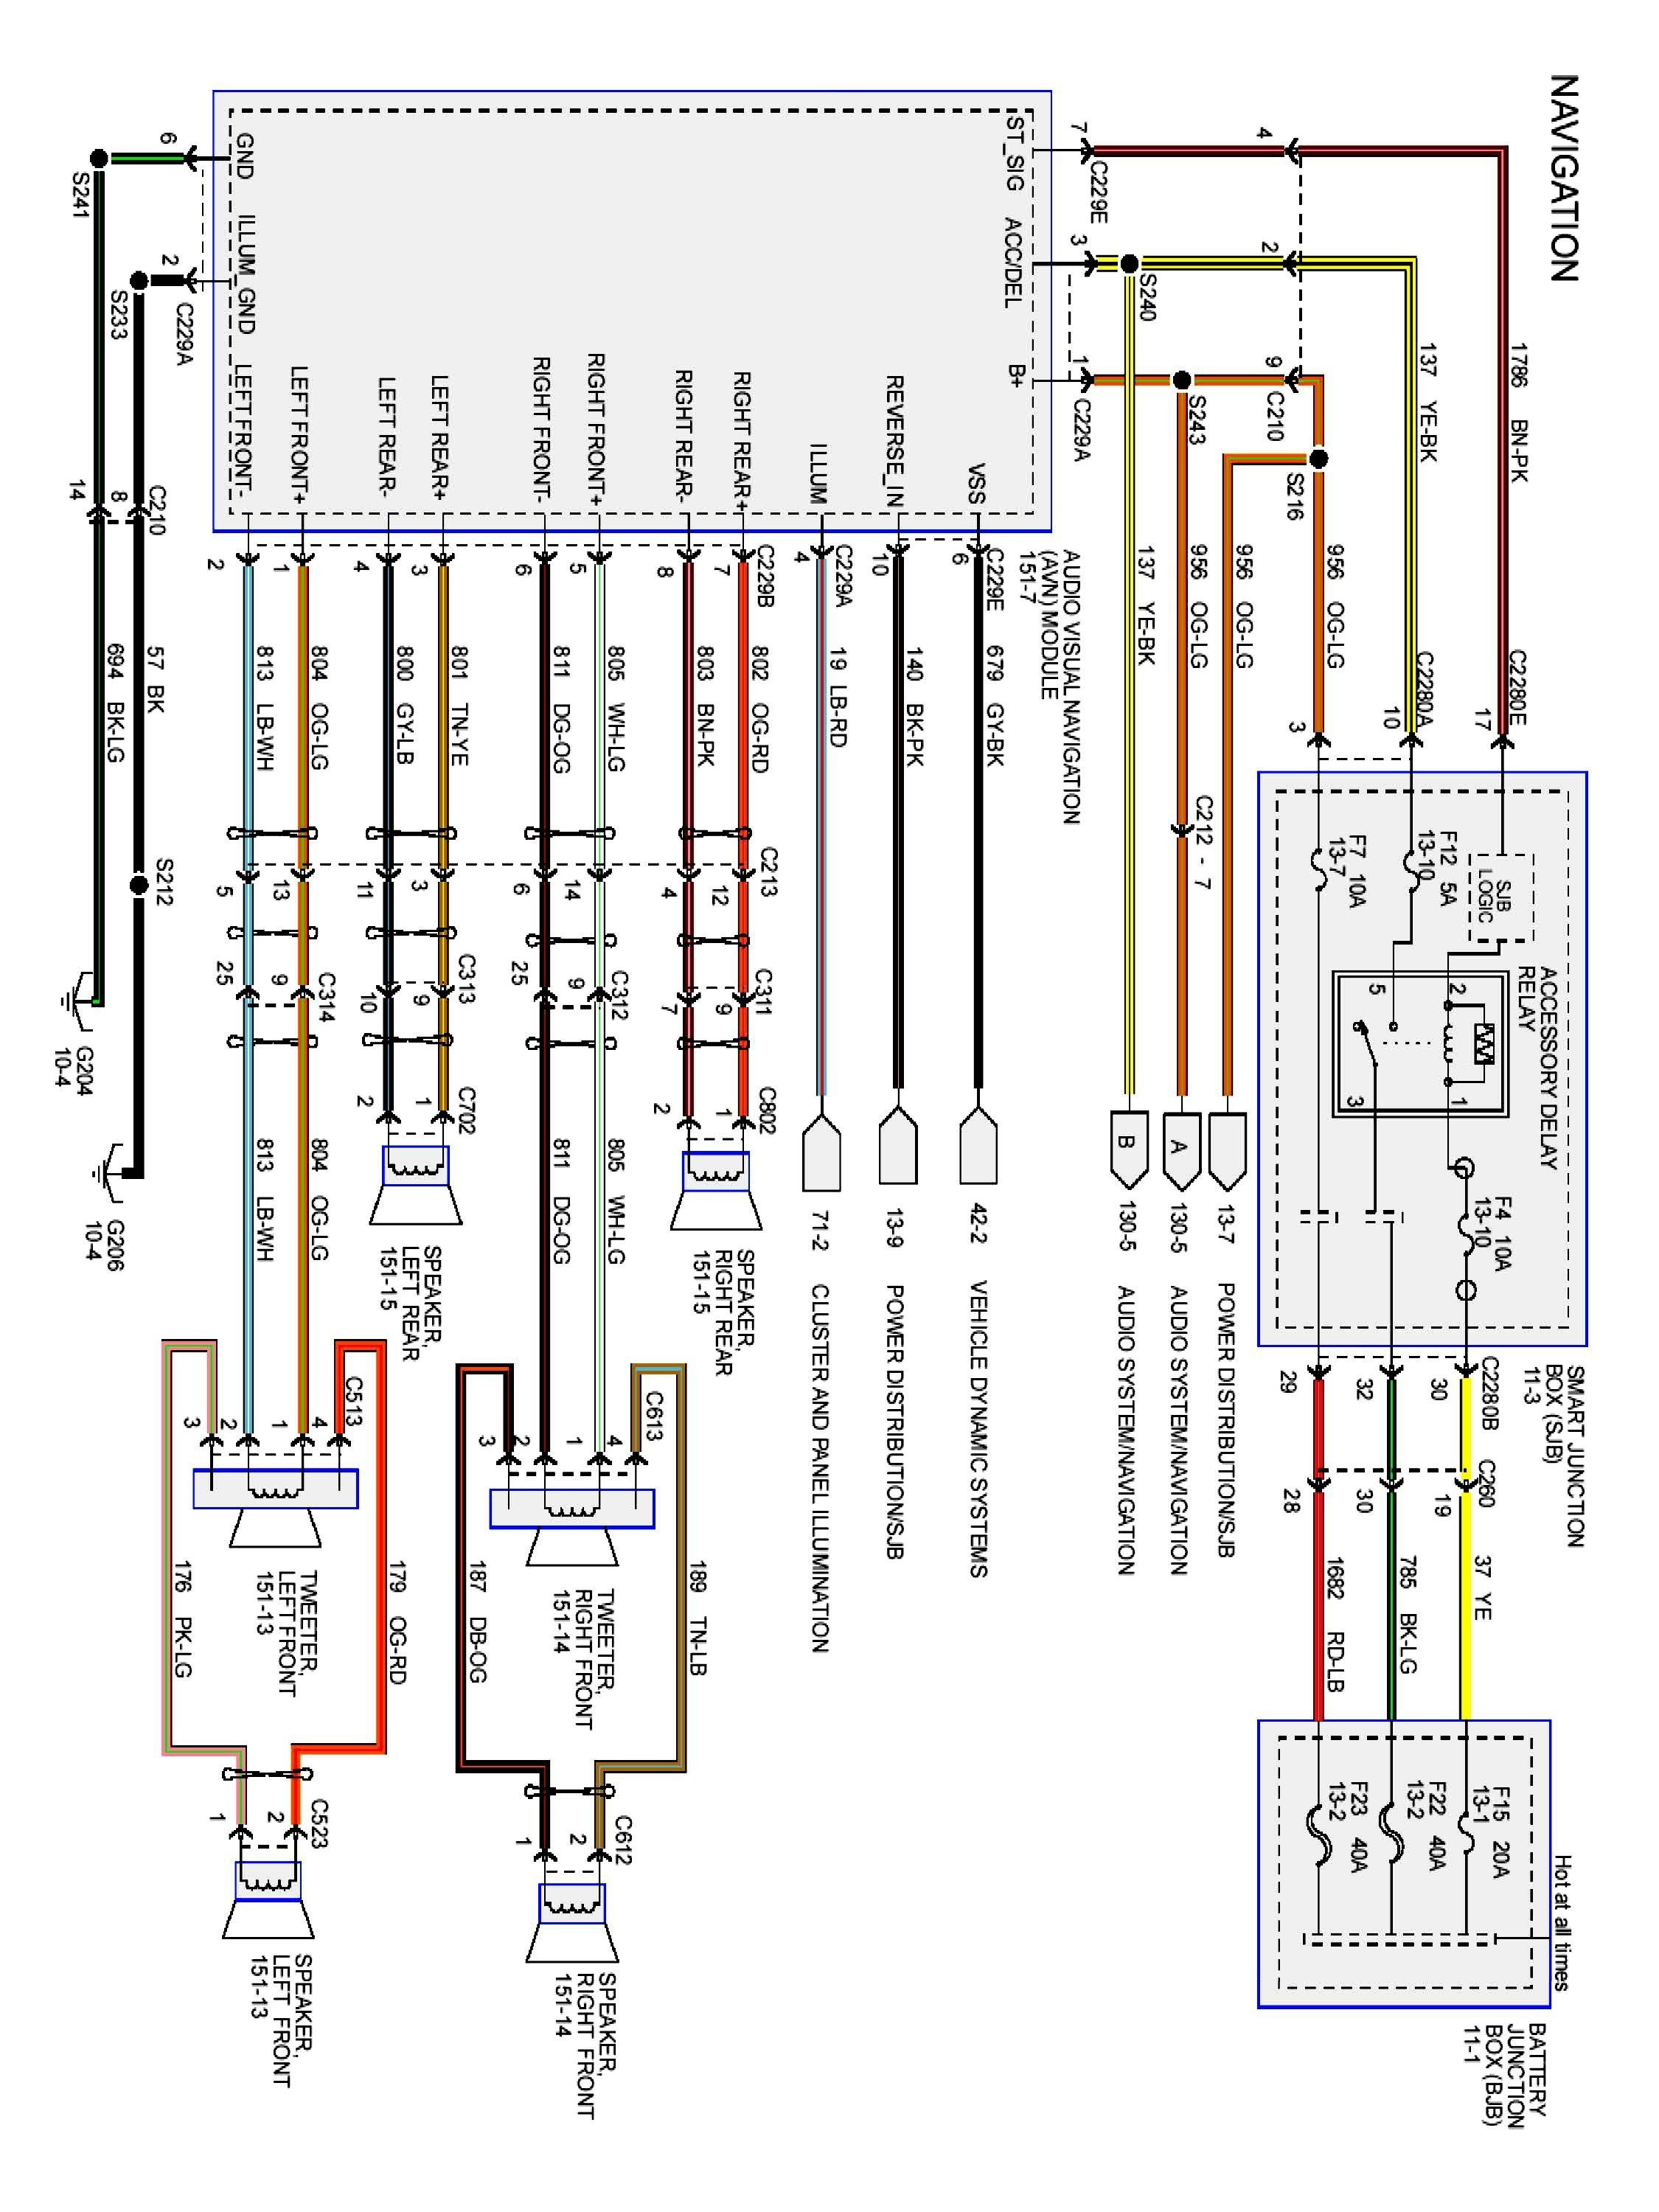 1995 Ford F150 Radio Wiring Diagram Example Of 2001 Ford F250 Radio - Ford F150 Radio Wiring Harness Diagram